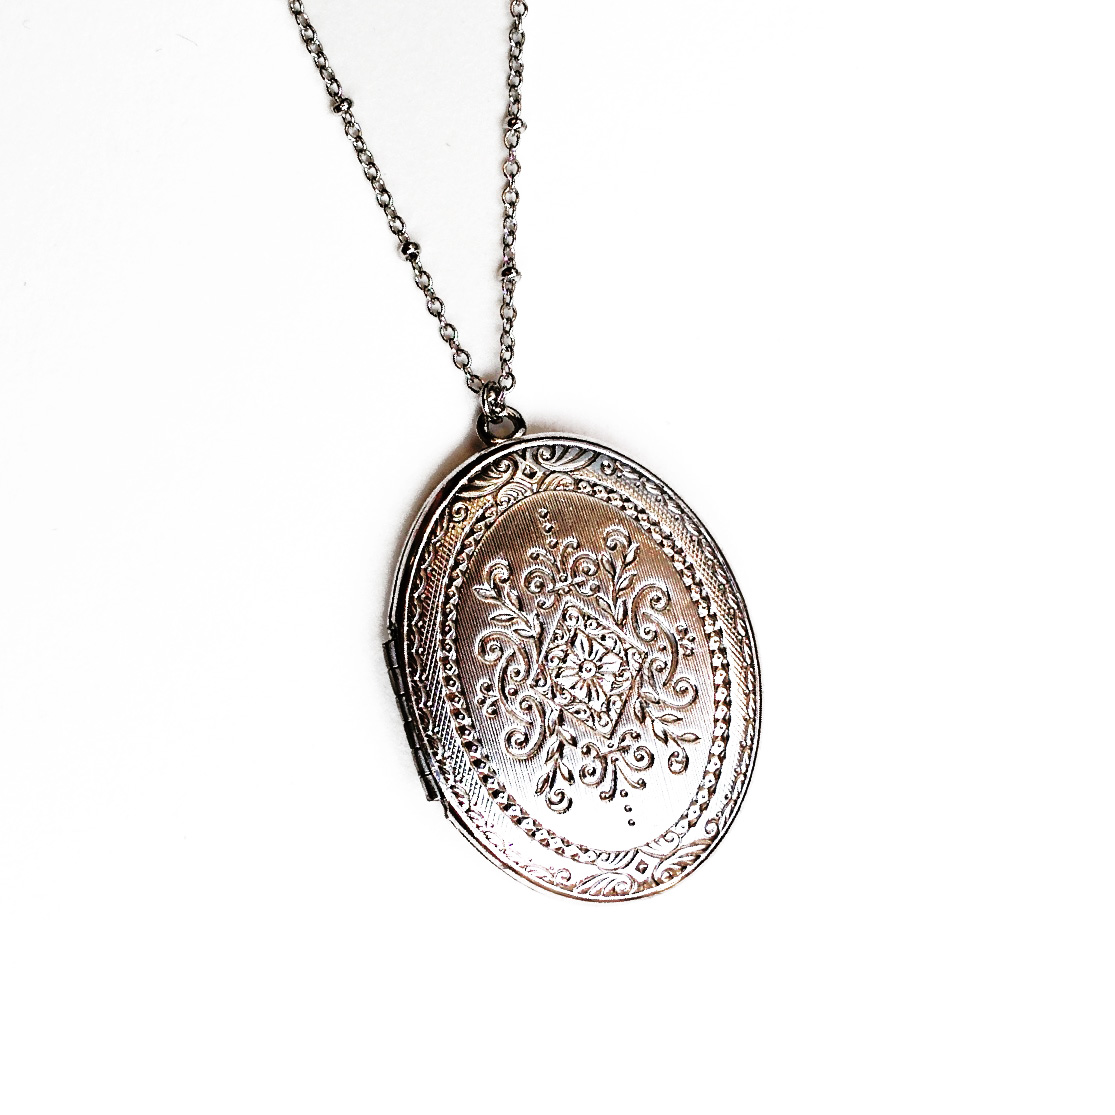 Locket with embossed details